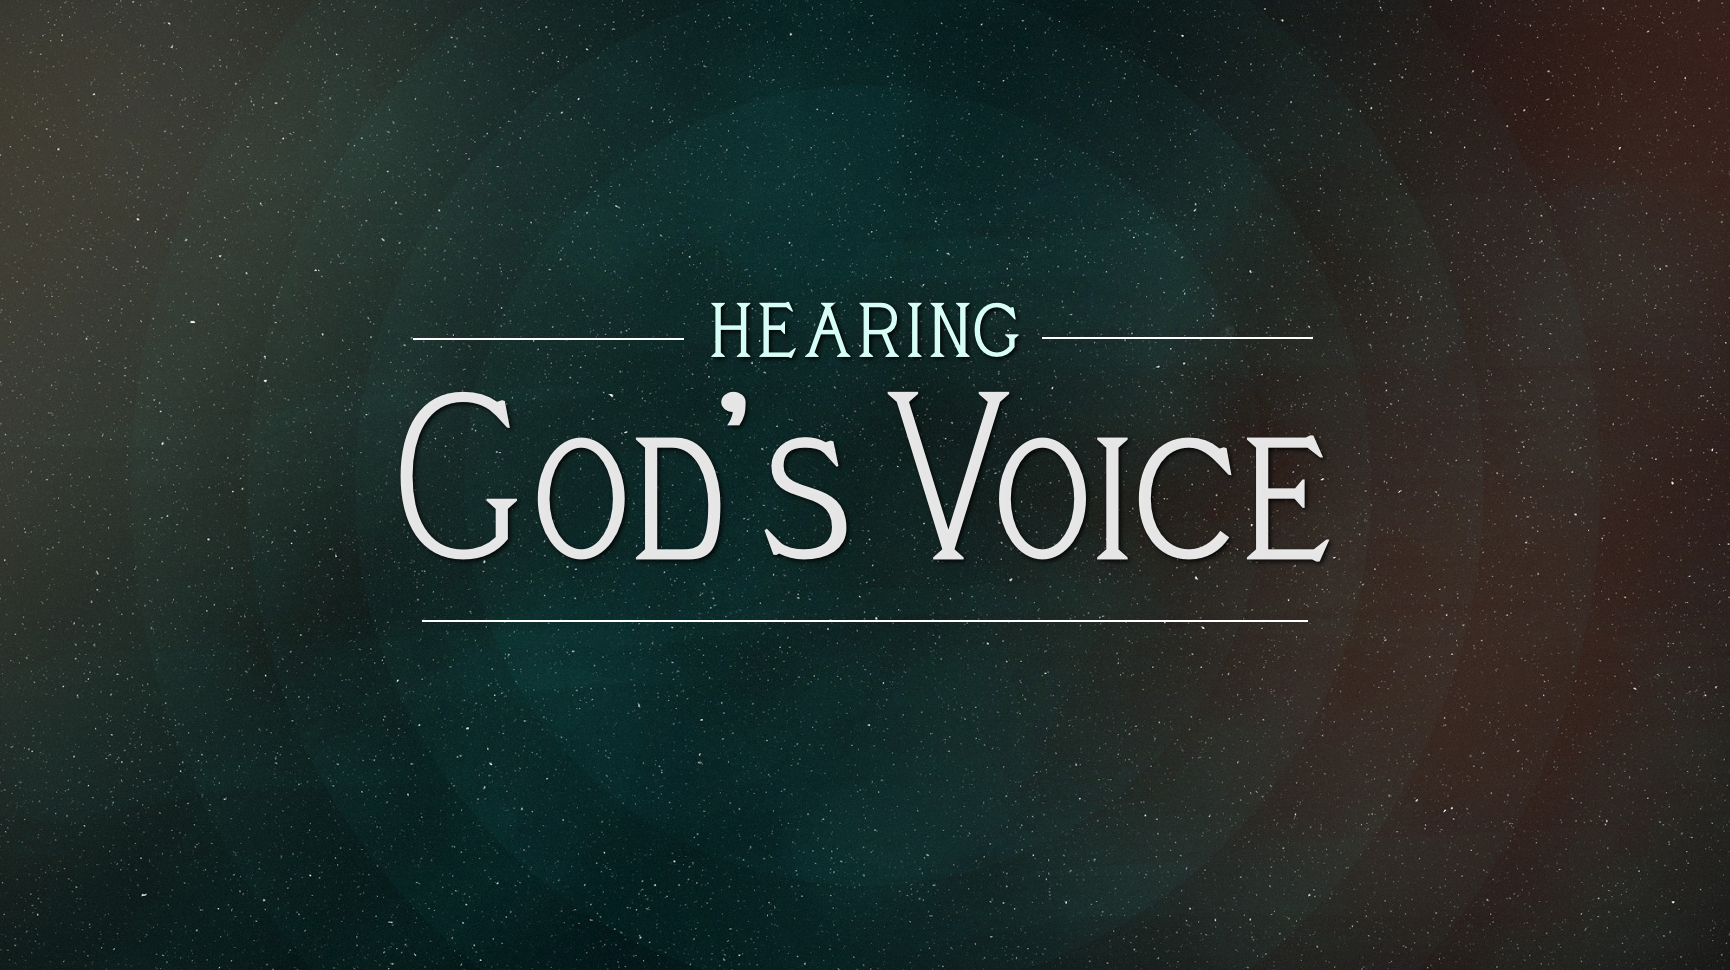 """Hearing God's Voice""  - Part 2 4-26-15"